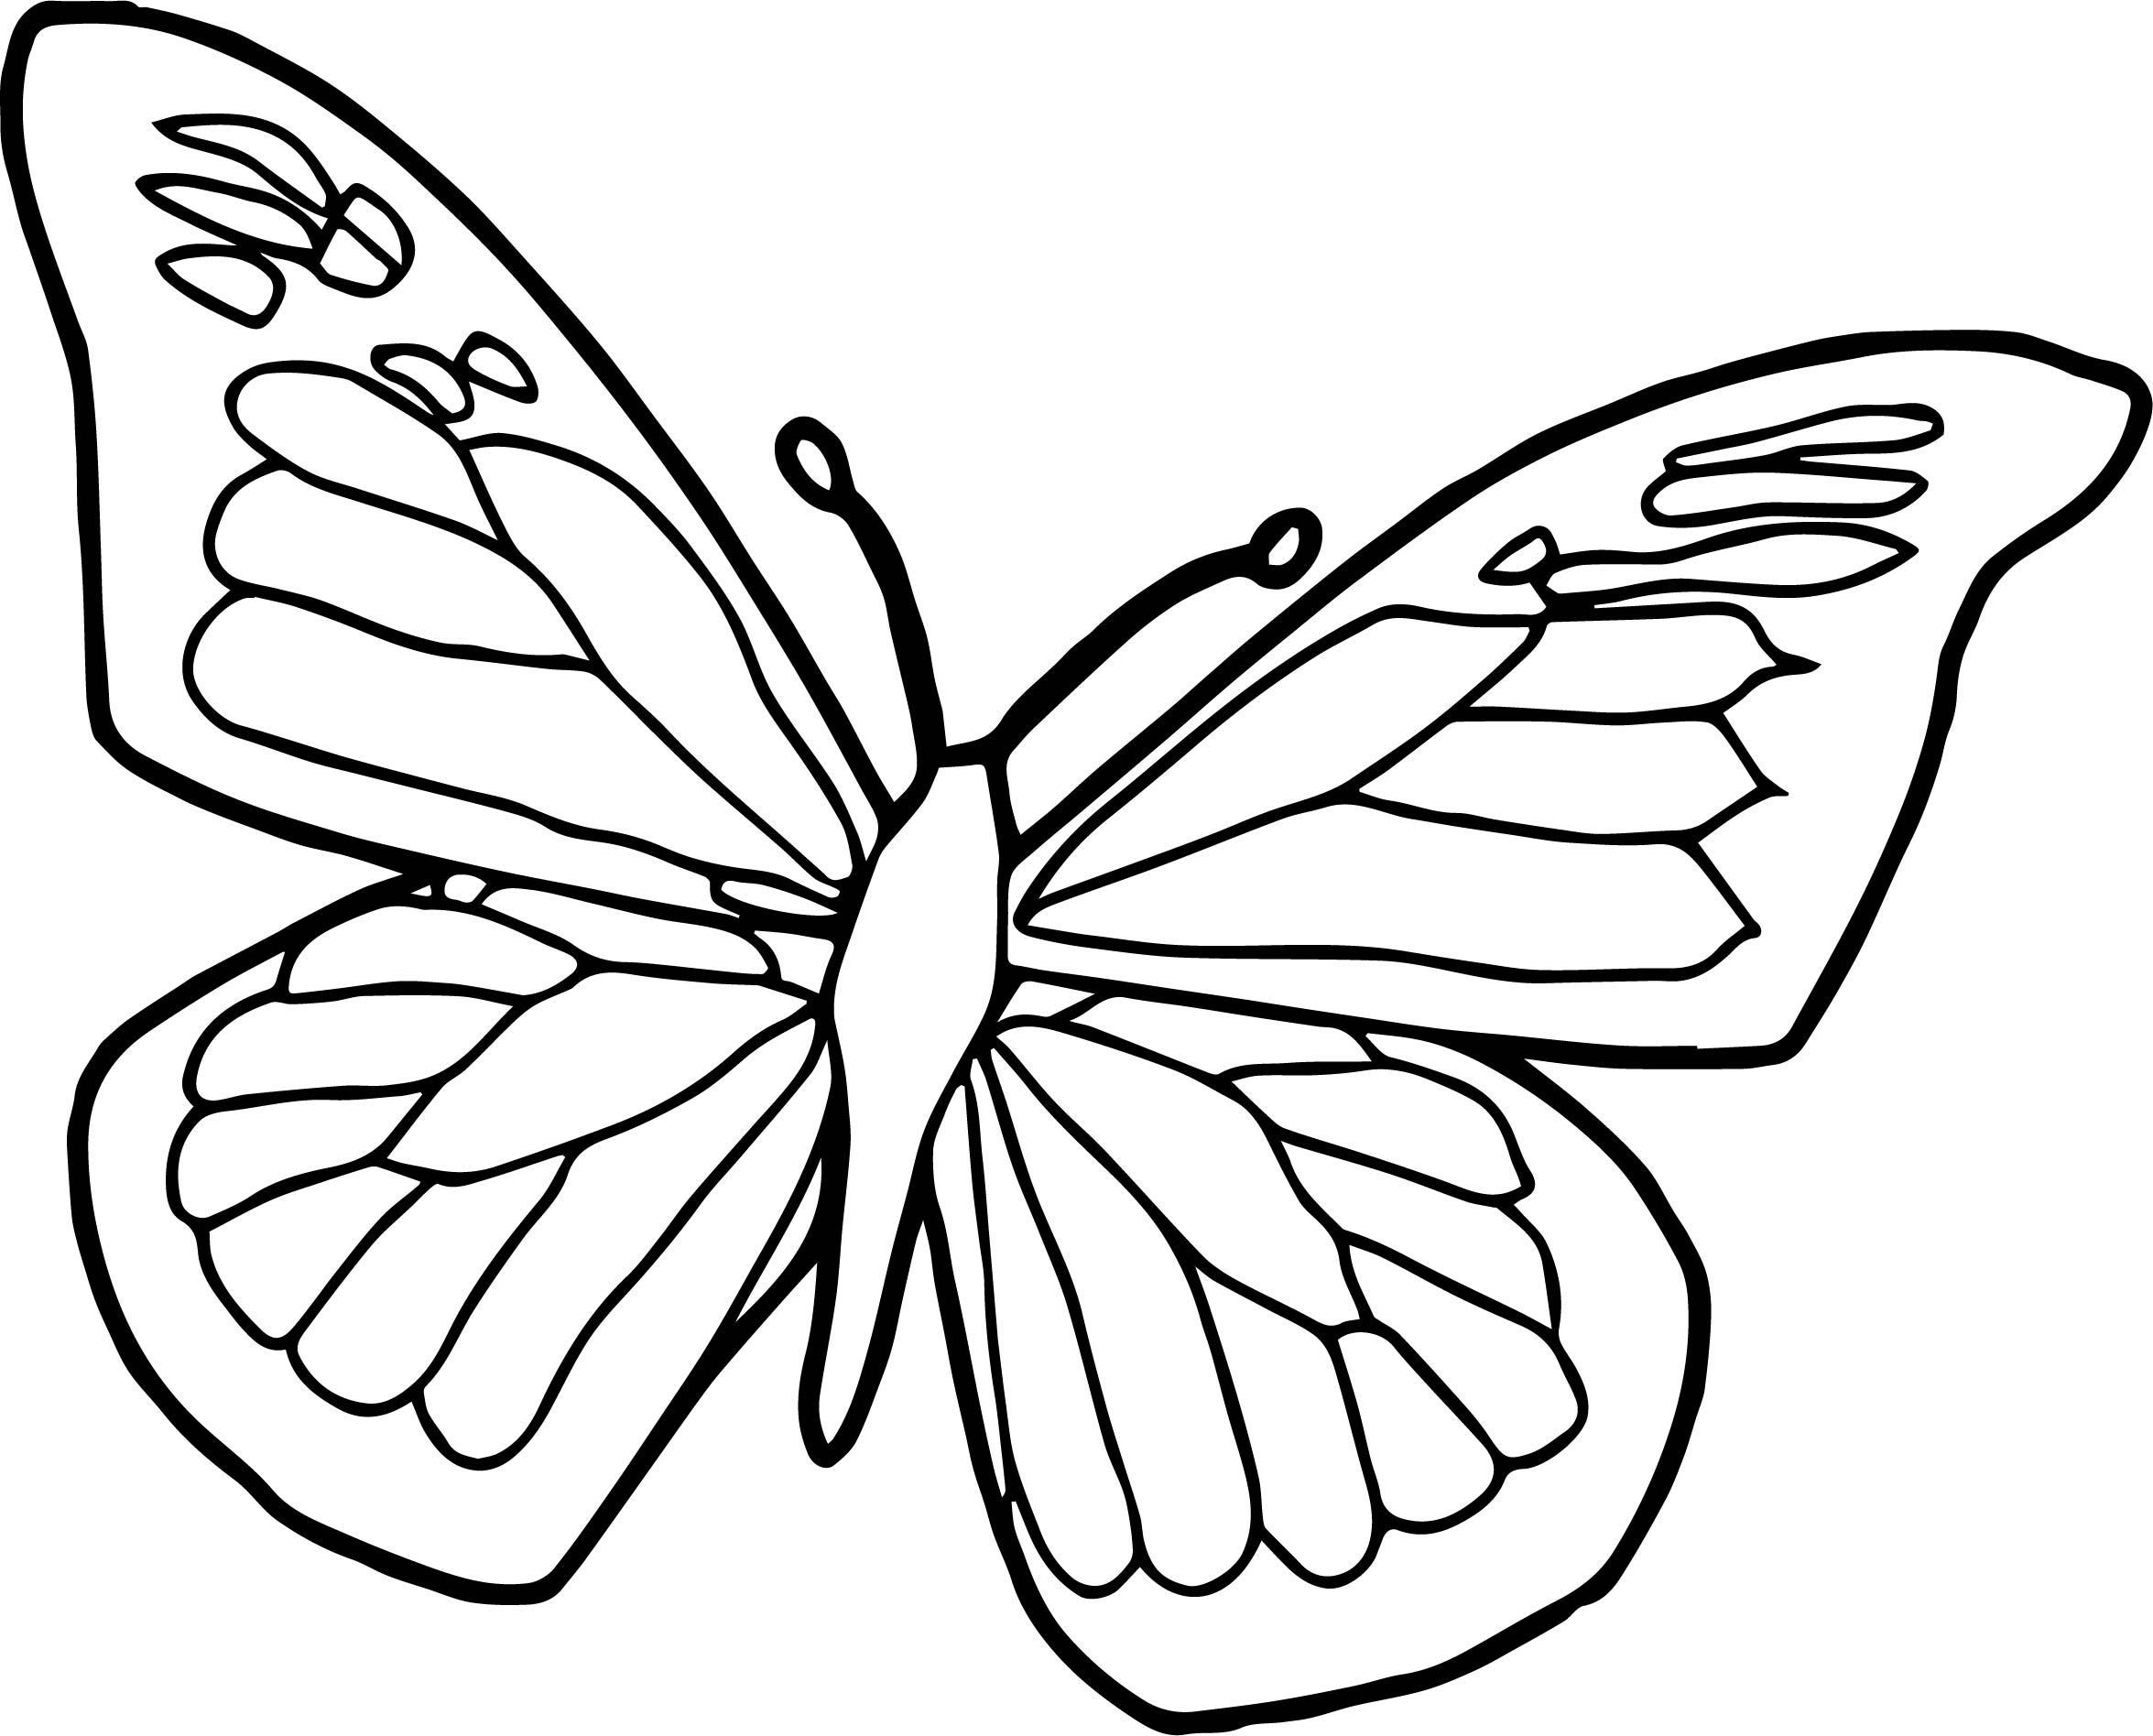 butterfly color page printable butterfly coloring pages for kids cool2bkids page butterfly color